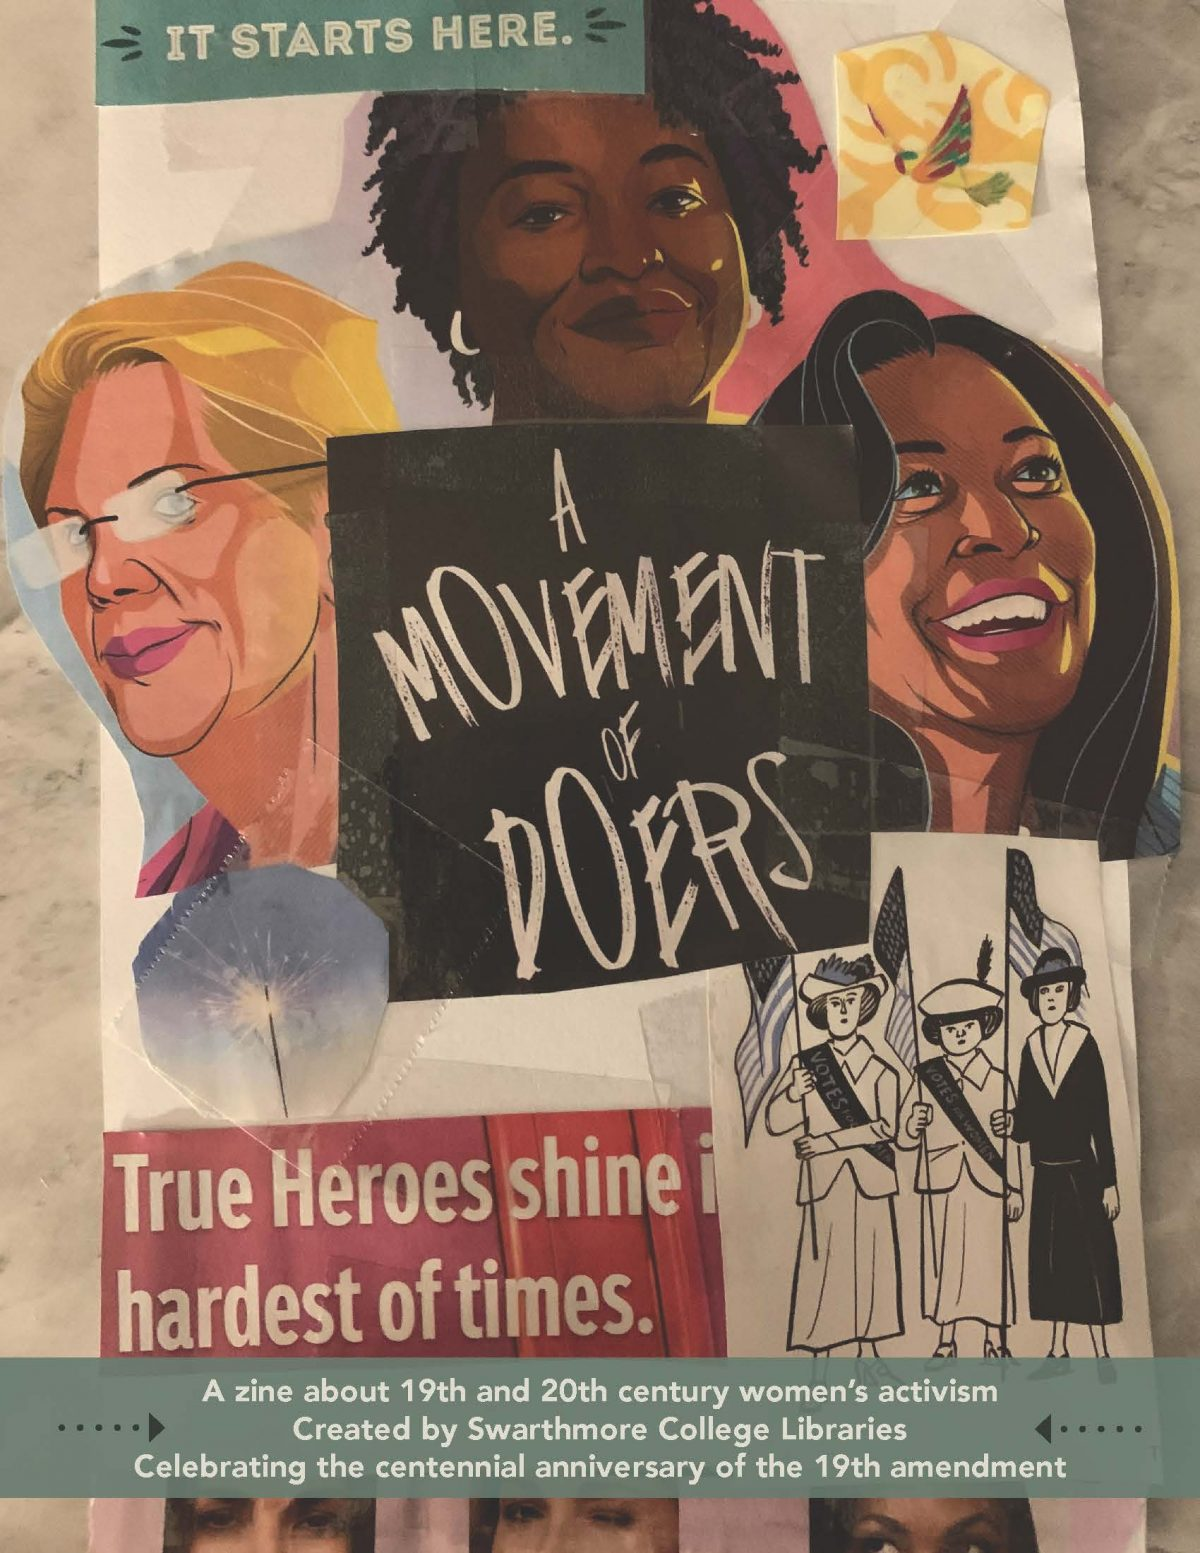 Swarthmore releases zine on 19th/20th century women activists